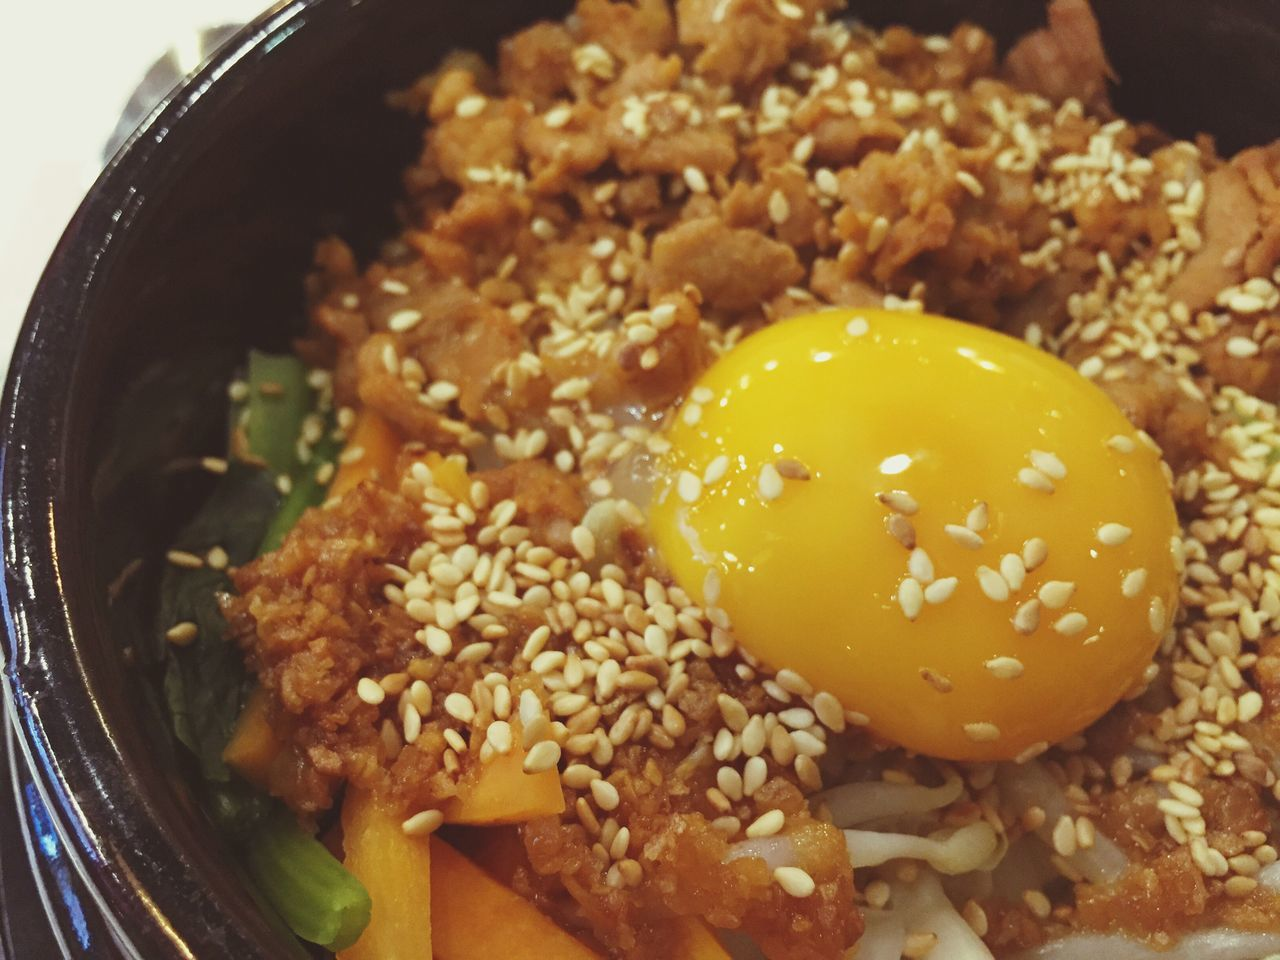 Korean rice Food And Drink Food Close-up Freshness Bowl Ready-to-eat Healthy Eating Egg Pork Sauce Korean Rice Pork Lunch Close Up Restaurant